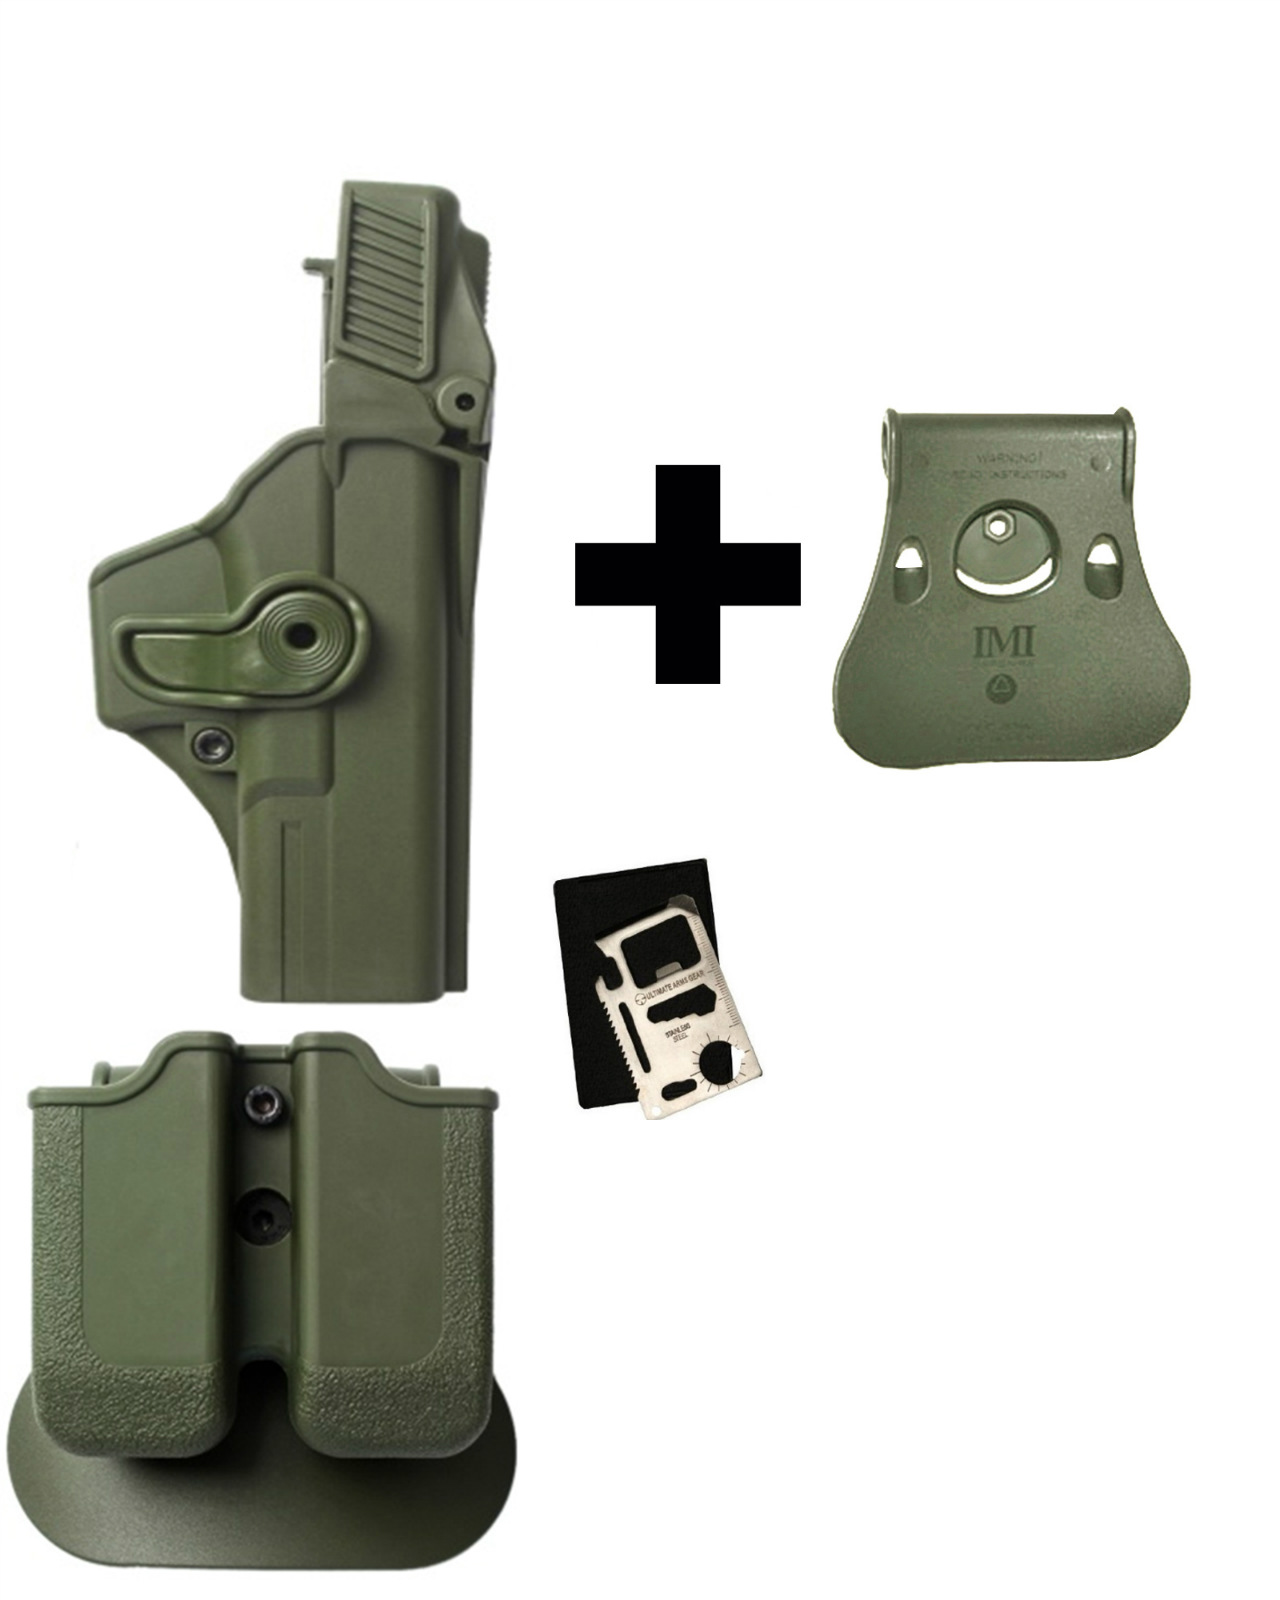 IMI Defense Z2000 MP00 Double Mag Holder & Paddle + Z1410 Level 3 360� Rotate Holster Glock 17 22 31 Gen 4, OD + Paddle... by